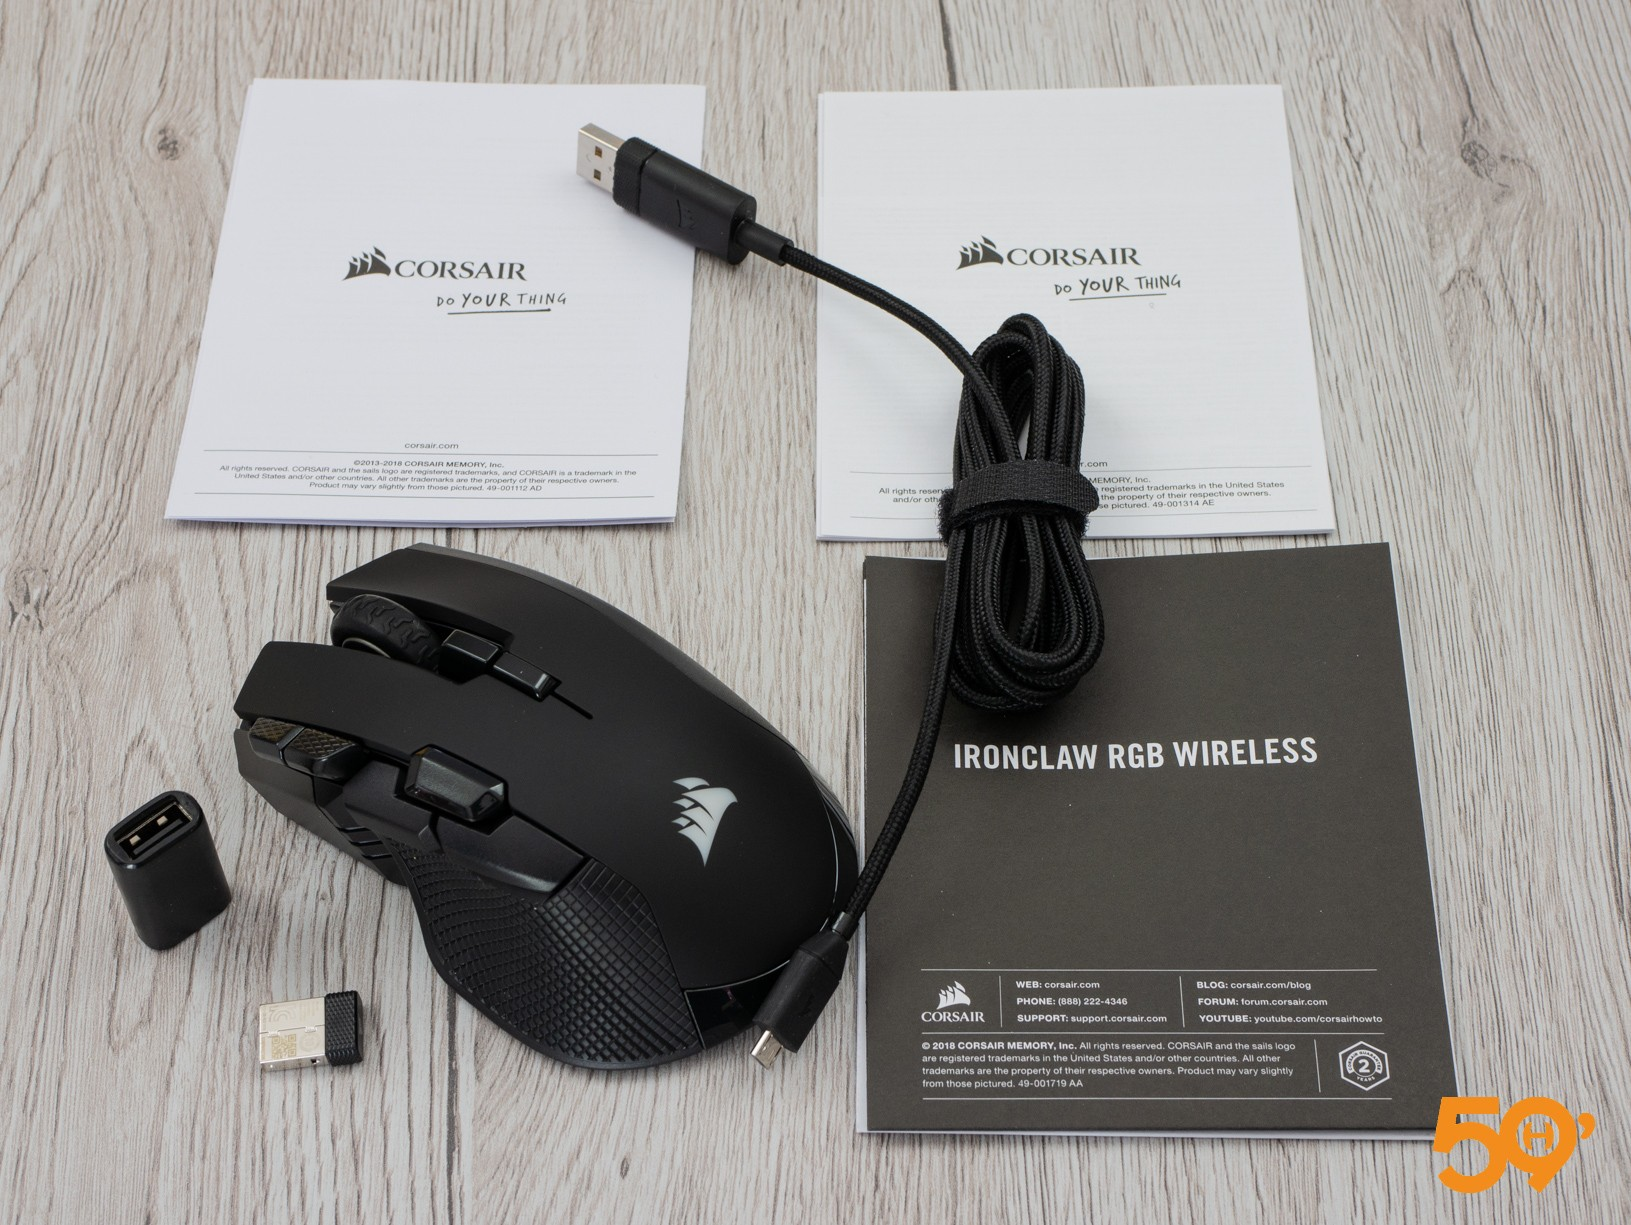 unboxing souris Corsair IronClaw RGB Wireless